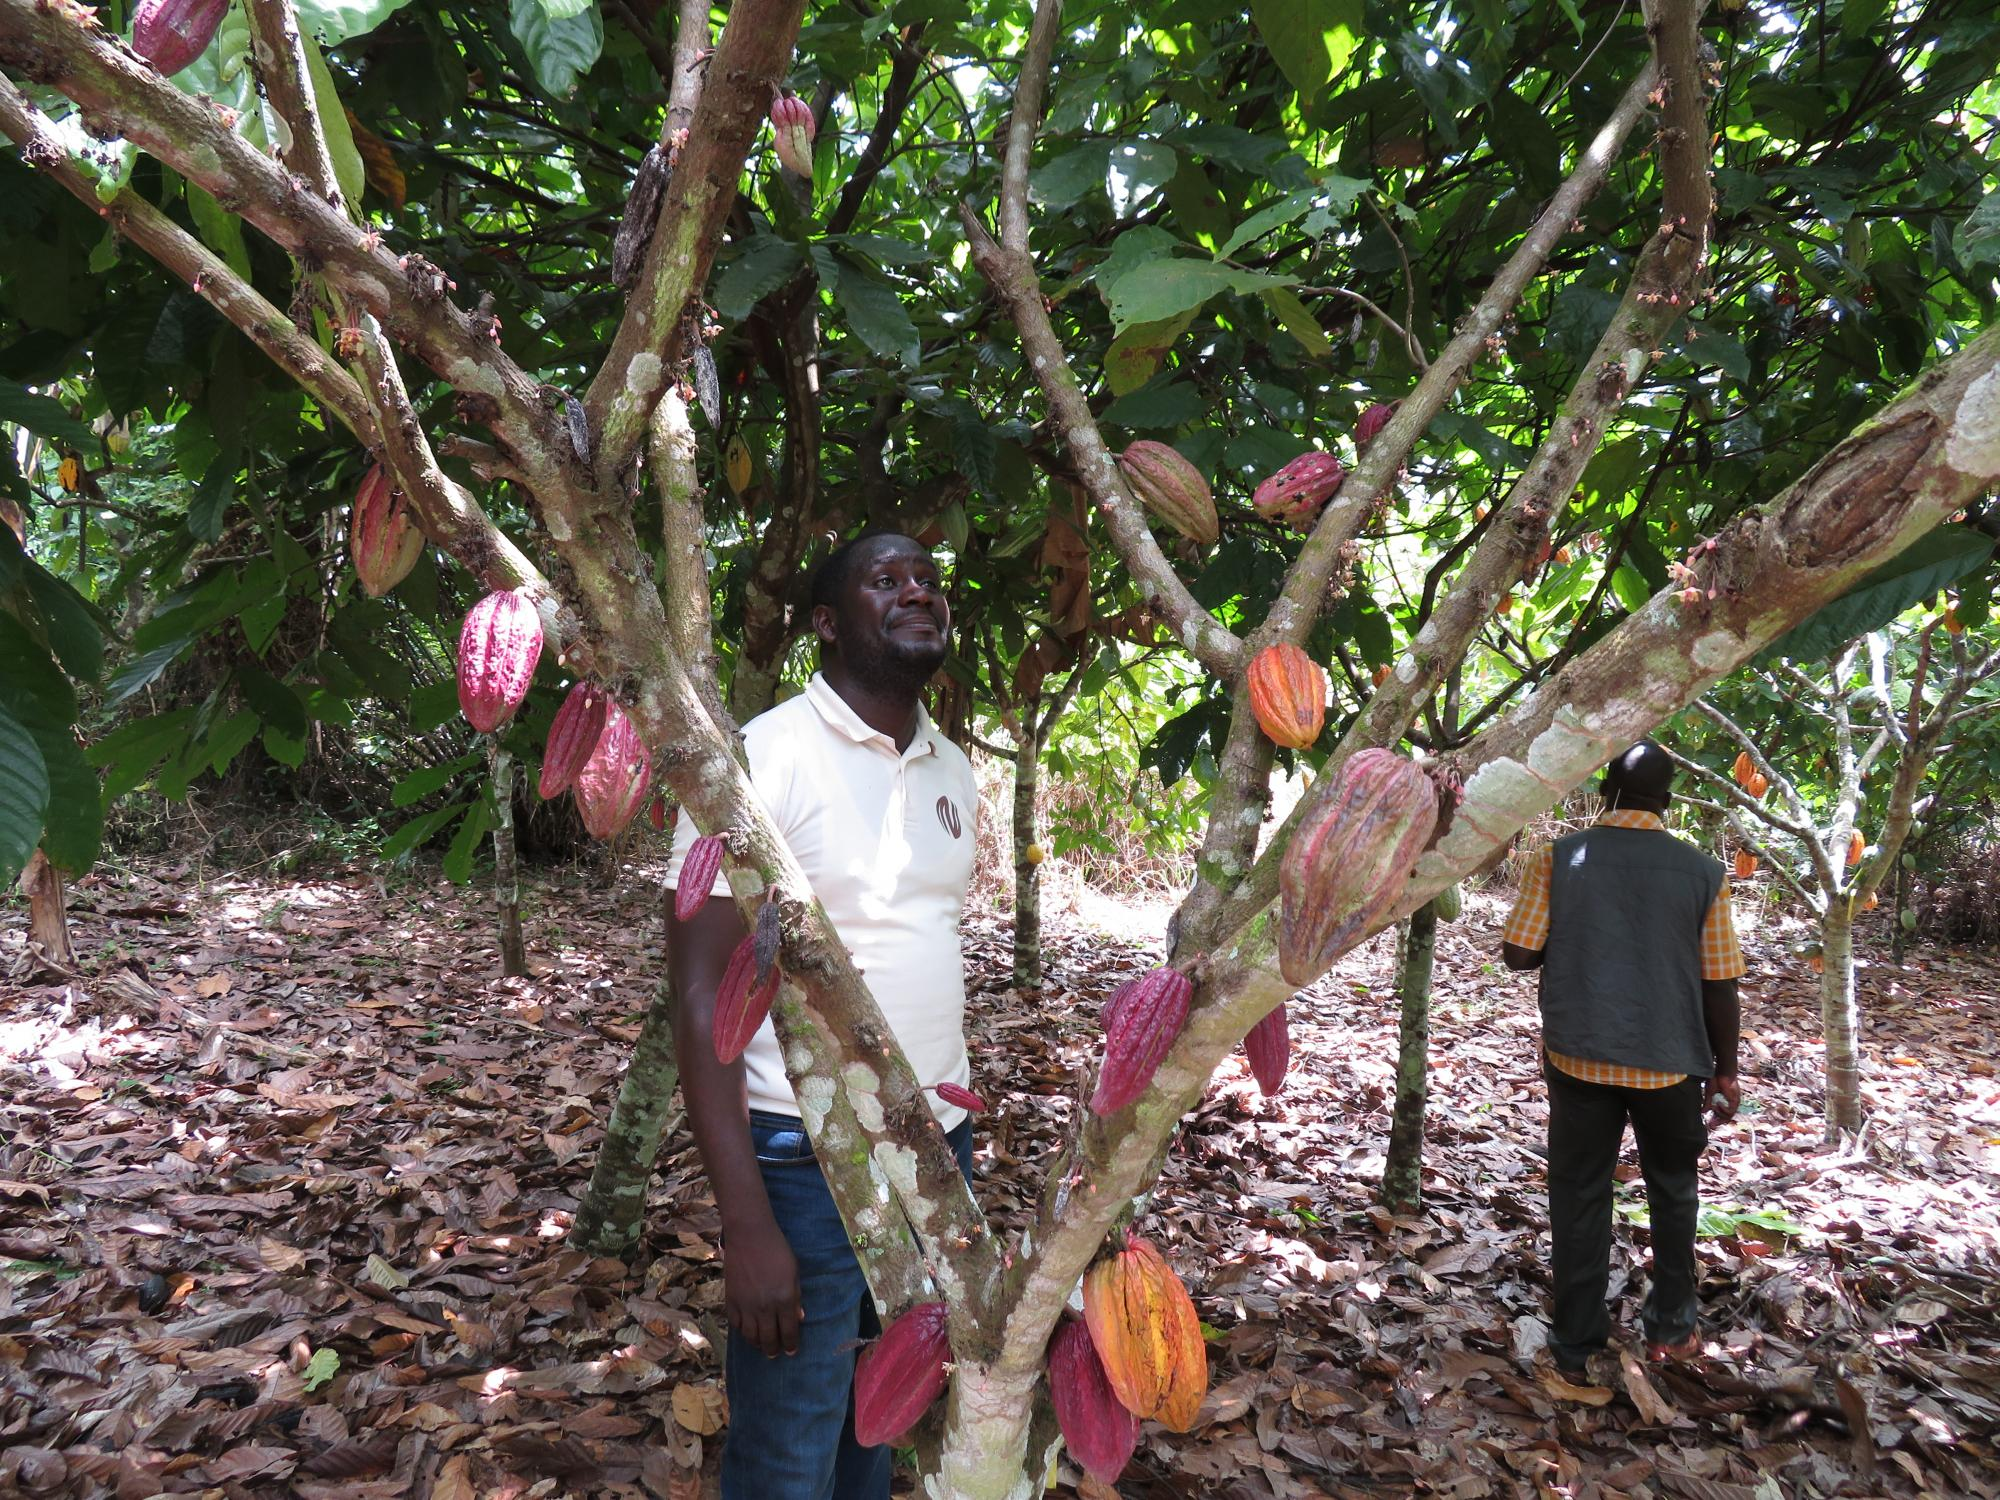 Romain Aka, a World Cocoa Foundation Fellow from Cote d'Ivoire who trained with Judy Brown in the UA Plant Sciences lab on a USDA fellowship,  collects survey samples from cacao trees in his home country.